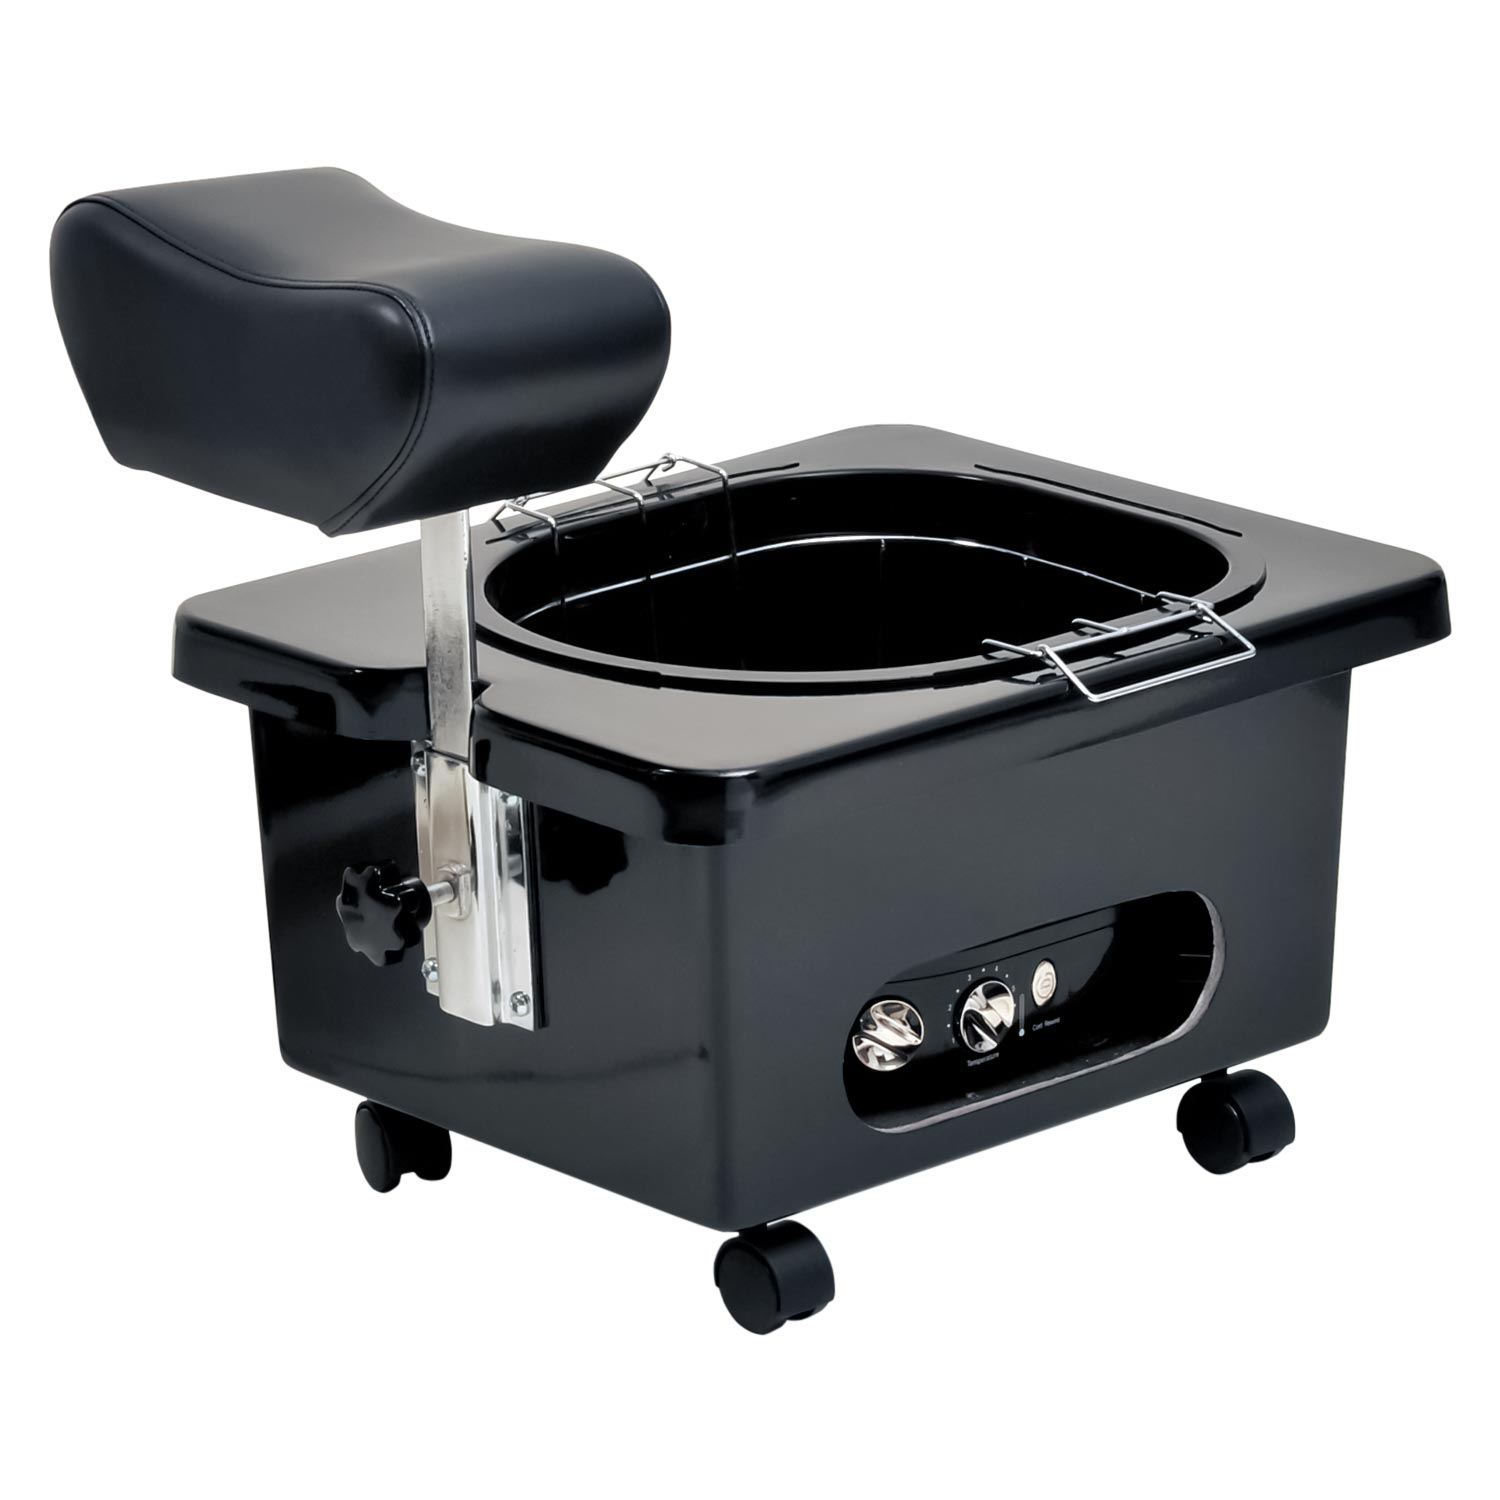 Pibbs Pedi-N-Go Portable Pedicure Bowl with Footrest  main product image